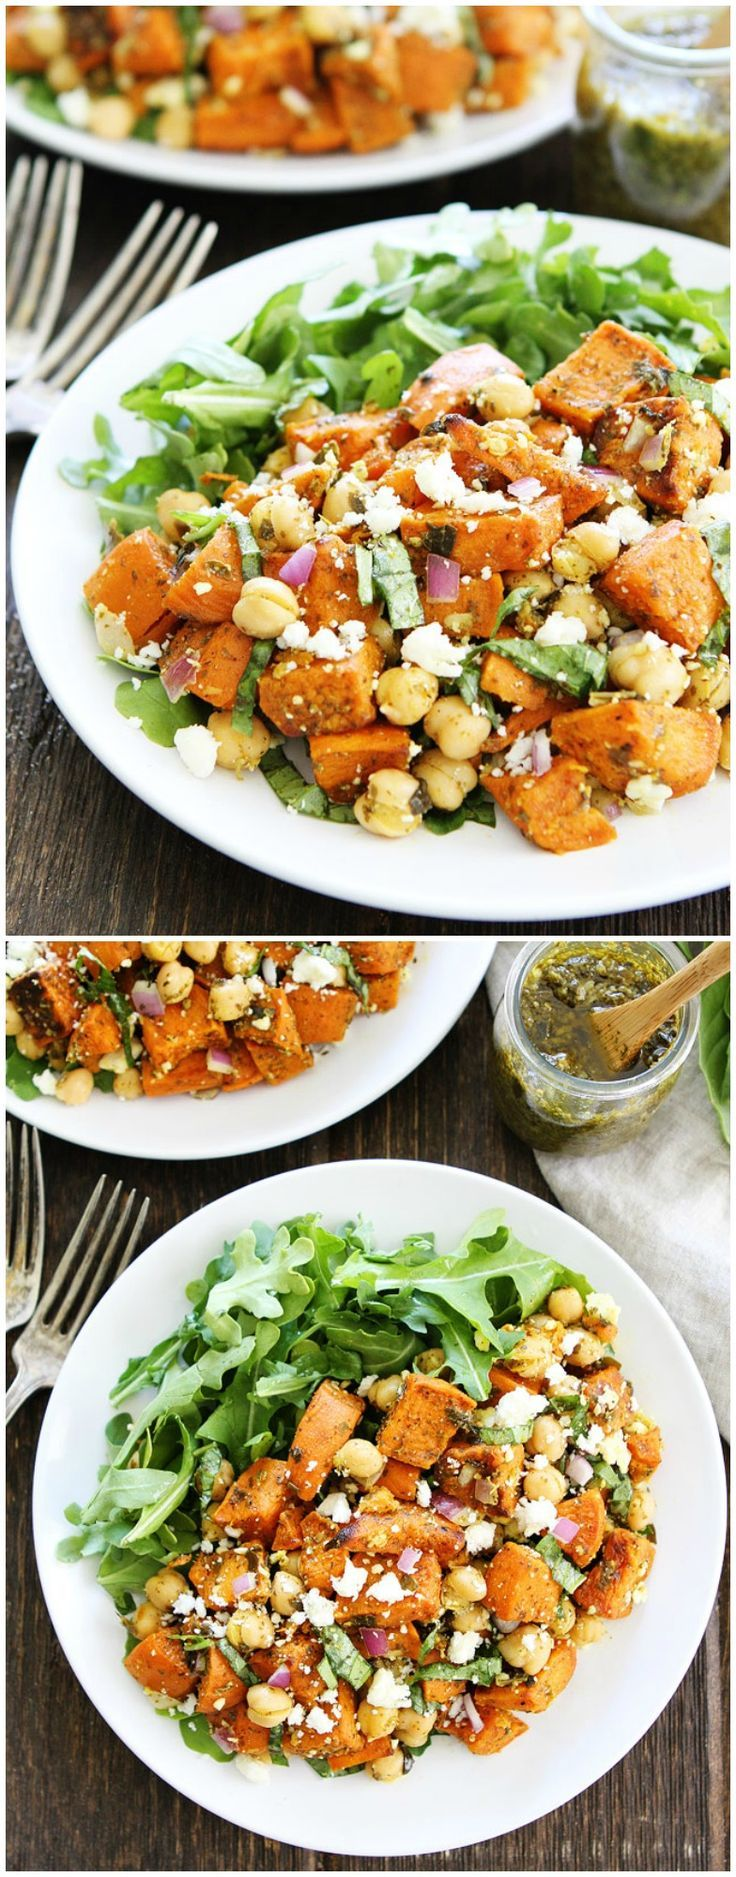 Sweet Potato Chickpea Salad with Pesto Recipe on http://twopeasandtheirpod.com This simple salad is loaded with flavor. Is great served as a side dish or main dish.